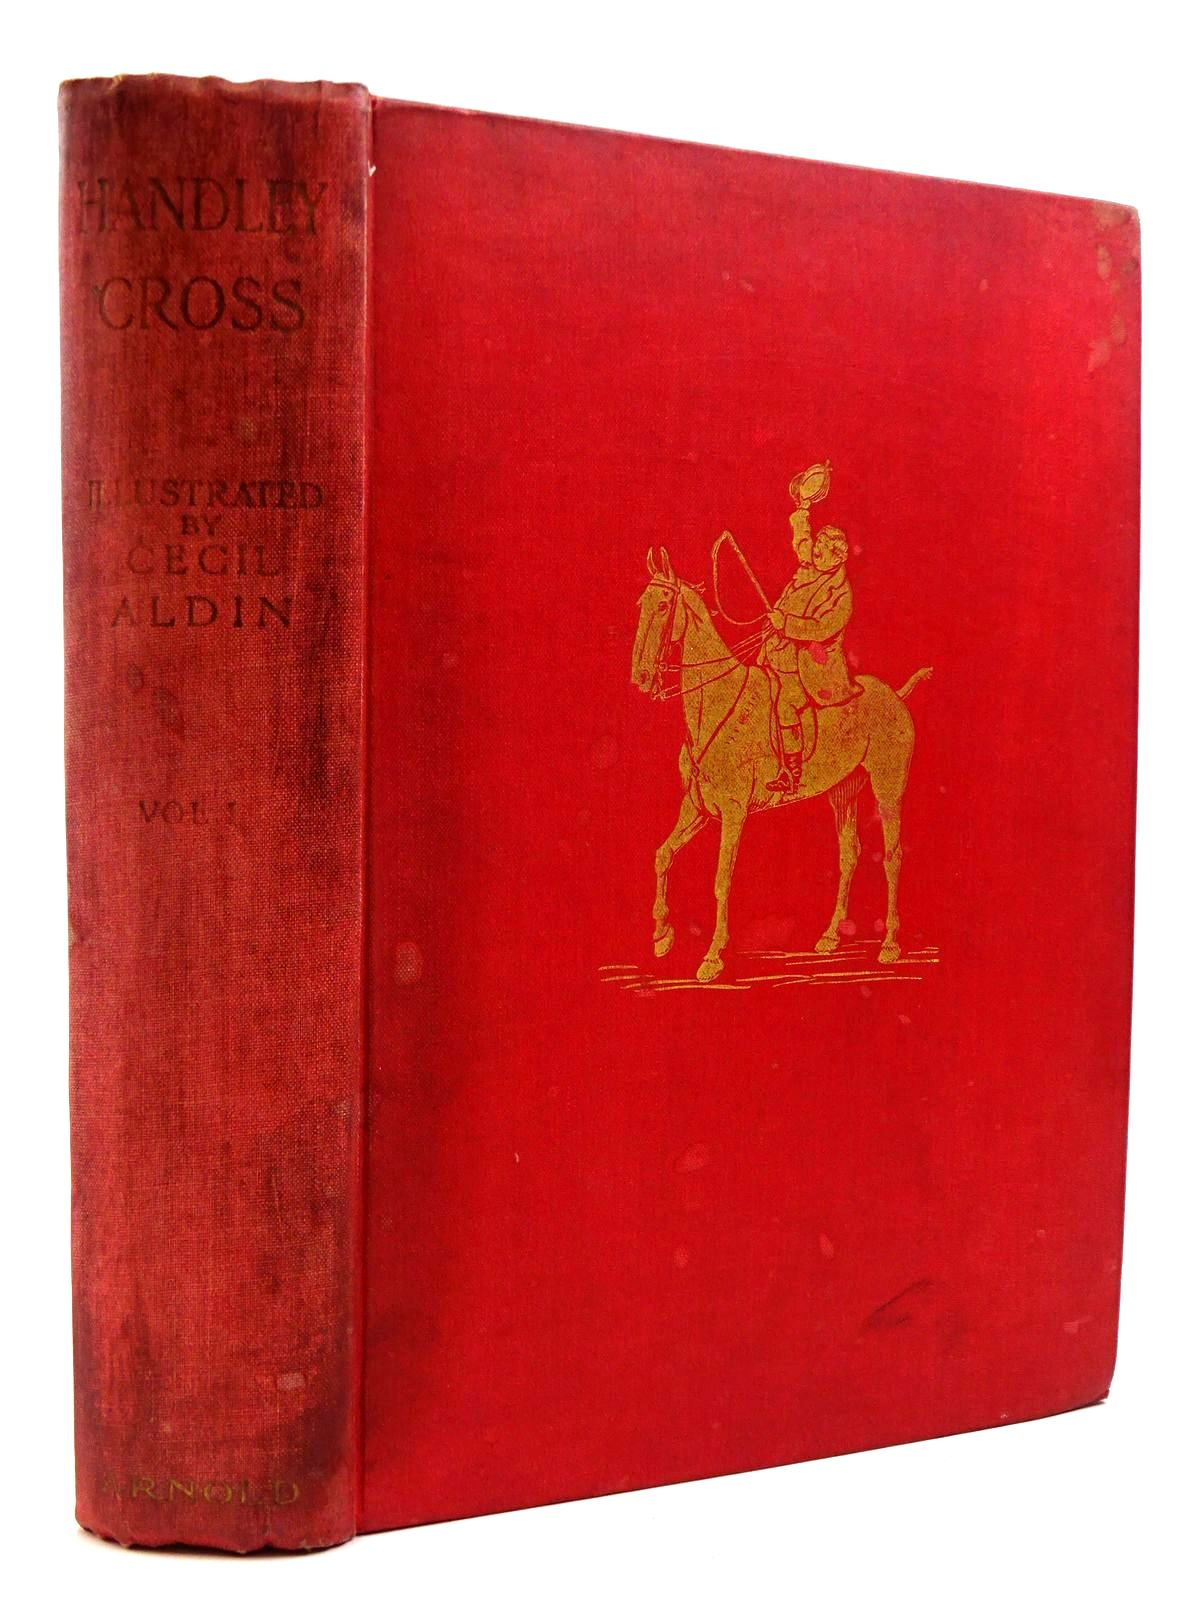 Photo of HANDLEY CROSS OR MR. JORROCKS'S HUNT - VOLUME I written by Surtees, R.S. illustrated by Aldin, Cecil published by Edward Arnold (STOCK CODE: 2130785)  for sale by Stella & Rose's Books